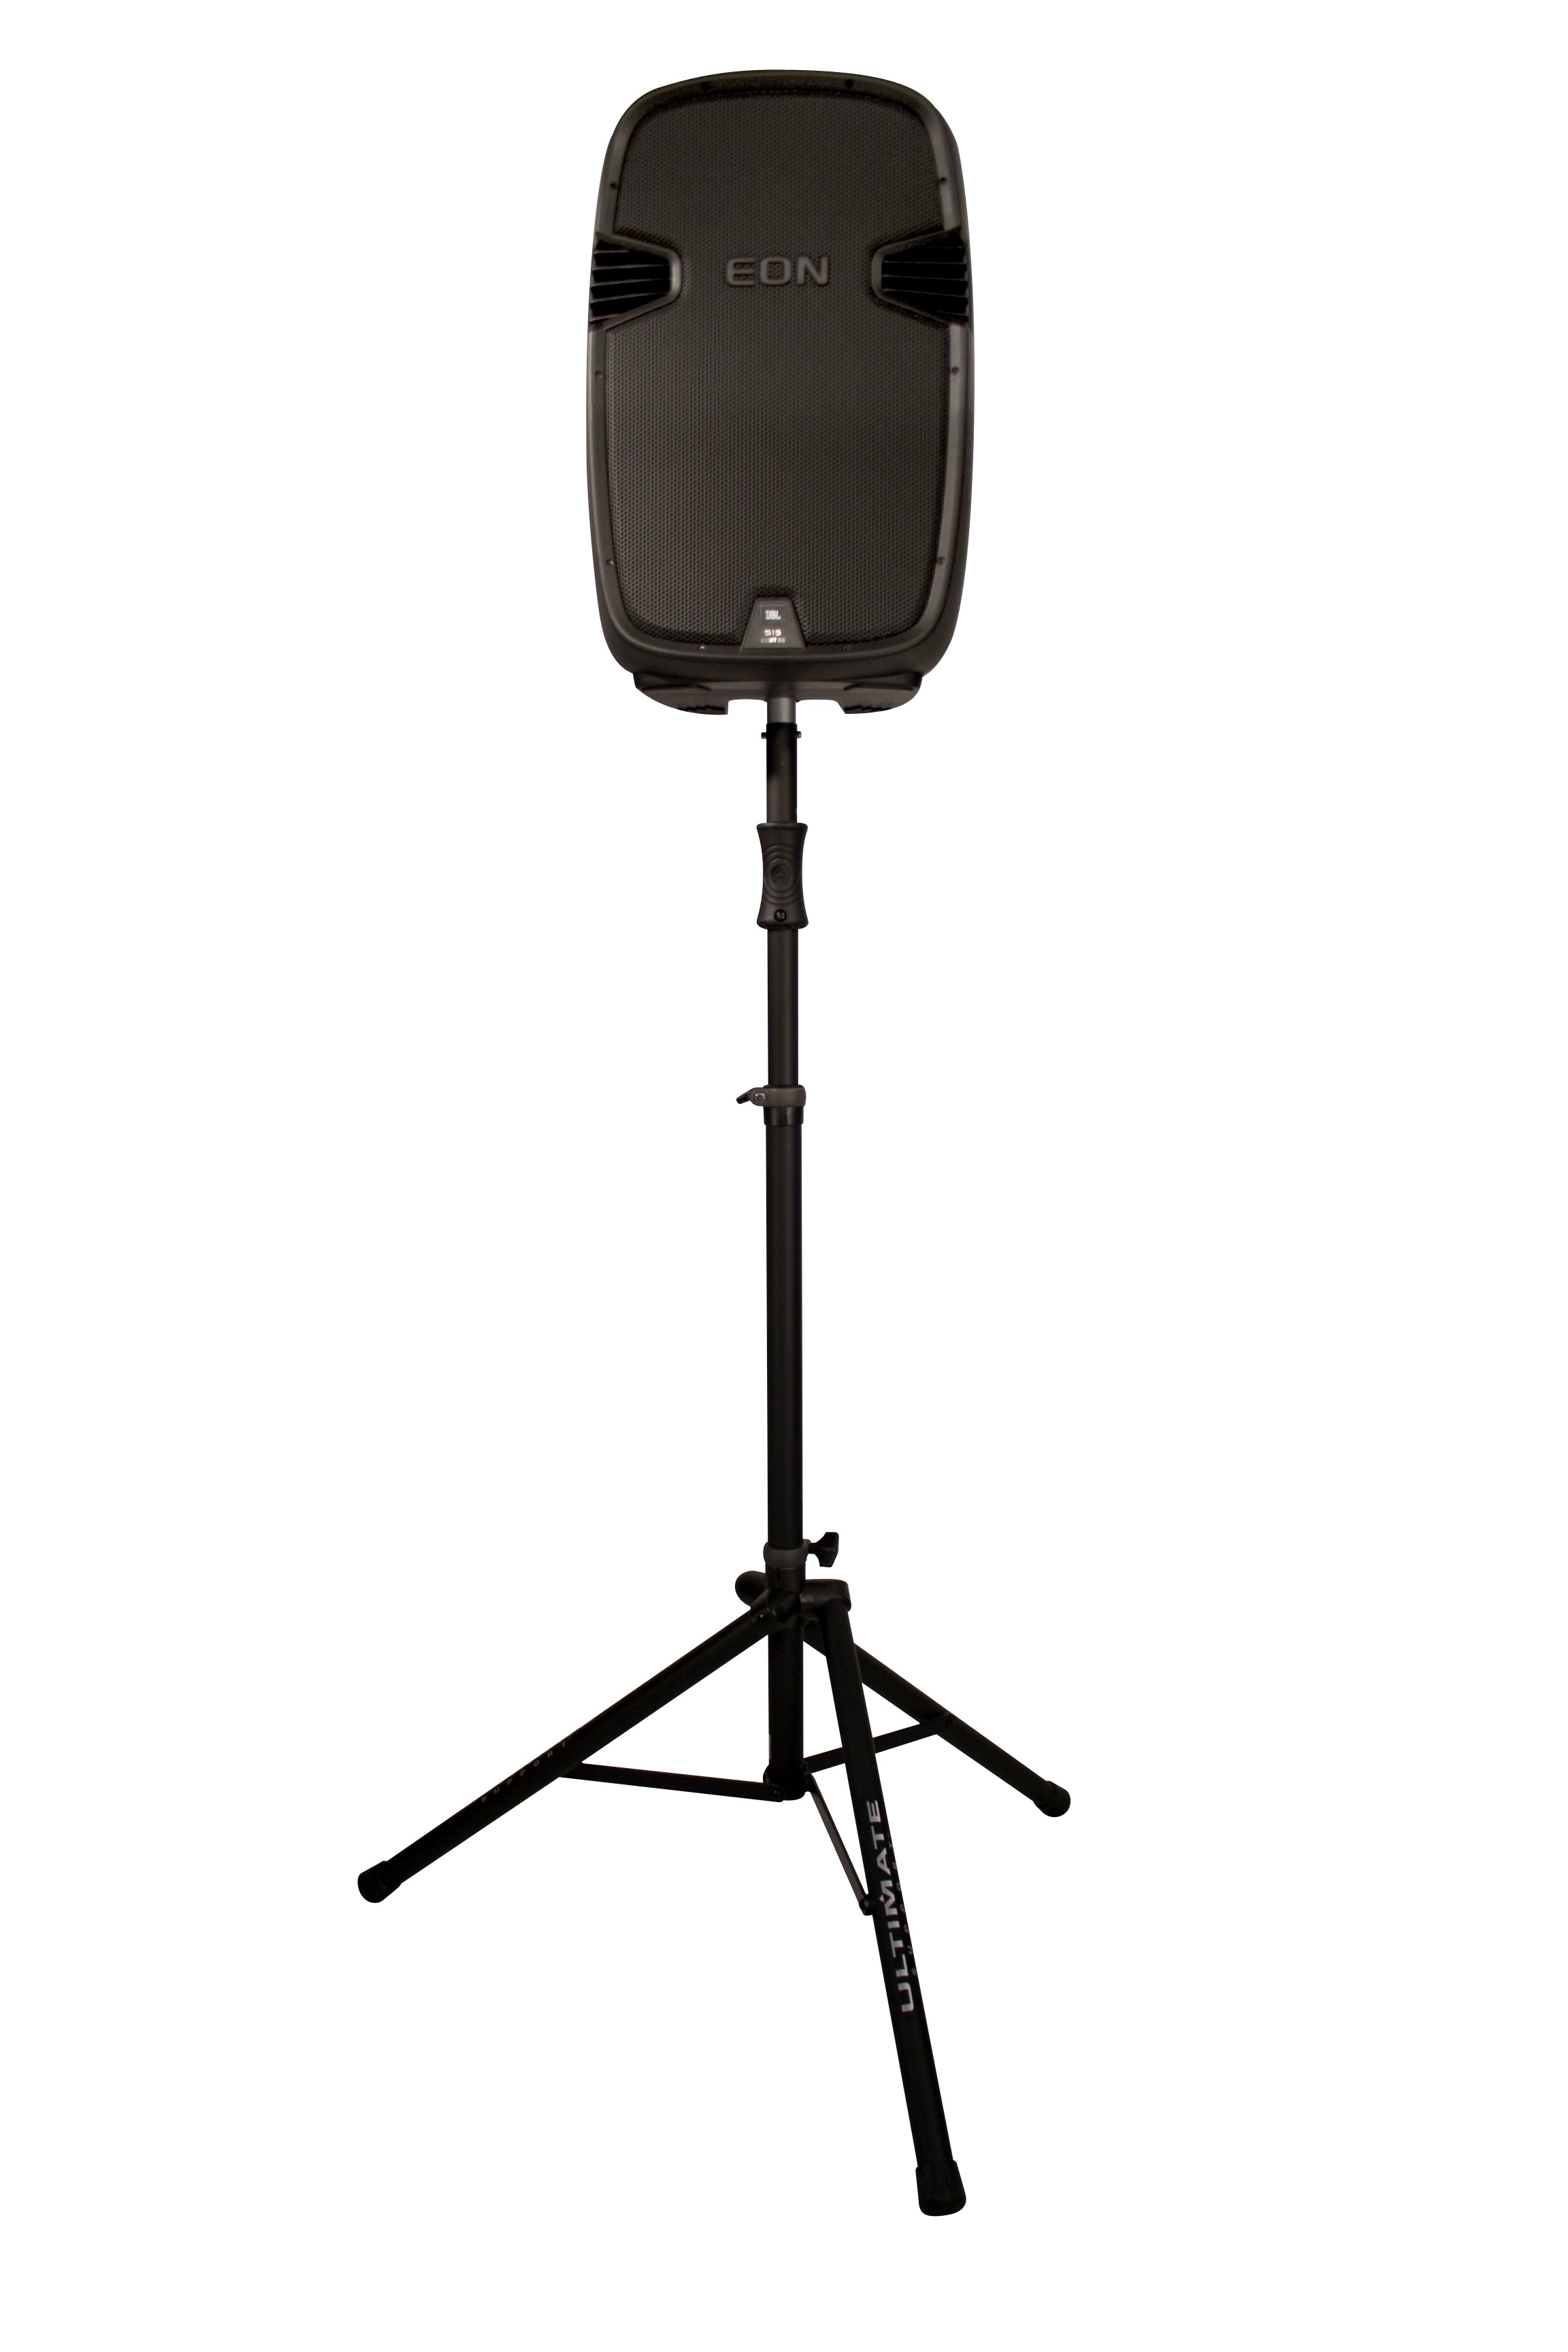 Microphone Support Only - $199 for Any Time Period